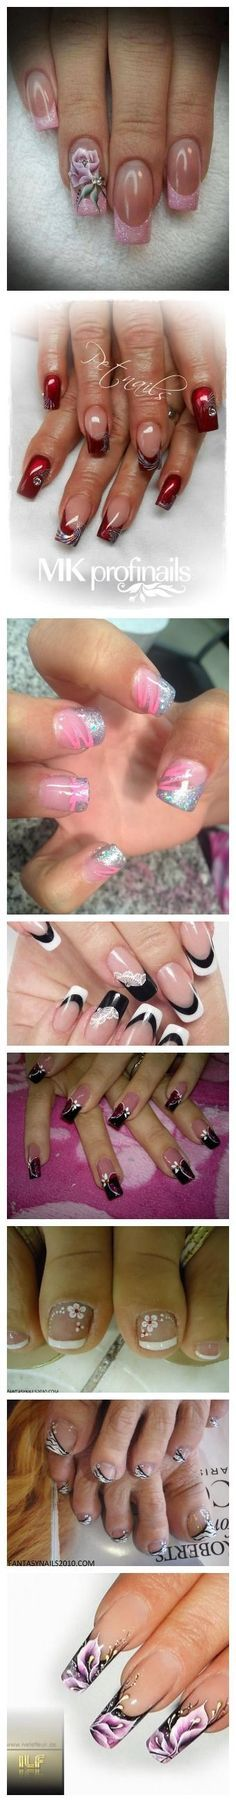 Lovely nails.